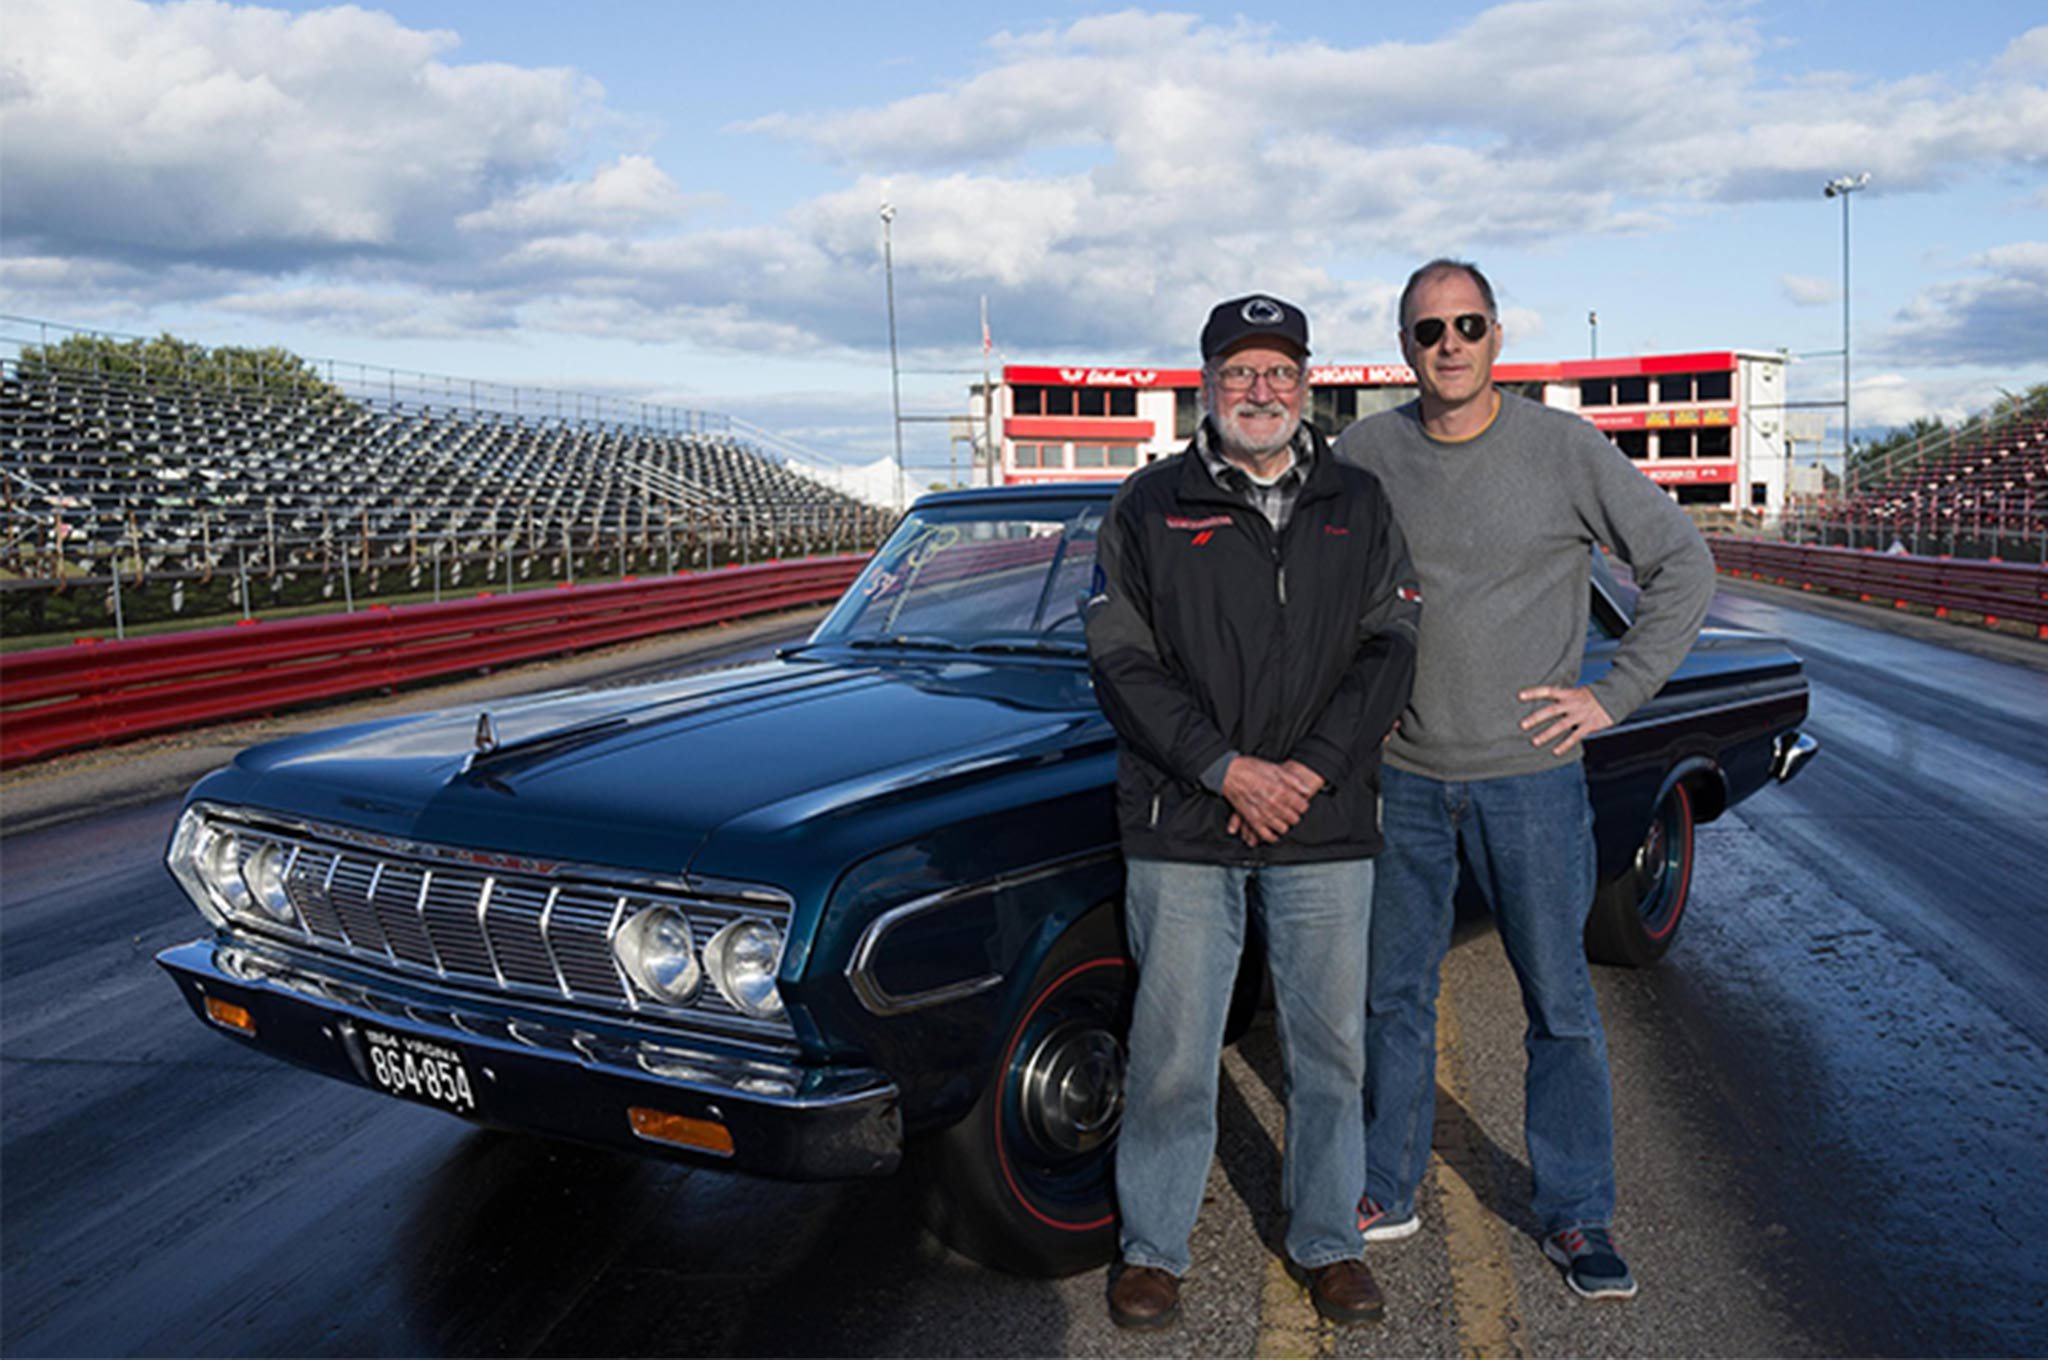 """Tom and son Tom S. with their more recent project, an all-steel, 11.0:1 compression Max Wedge 1964 Belvedere. With a pushbutton transmission and typical blueprinting, the car went 11.55 with a best speed of 122.56 mph against the Street Hemis at the Pure Stock drags in Stanton, Michigan. """"I enjoyed every minute of the project,"""" says Tom of the car he and his father raced. """"We approached the effort like we were preparing the Motown Missile. Every detail was evaluated one at a time at the racetrack. Results were corrected for weather. I became a better driver. The car went faster and faster. You can't beat the scientific method, baby!"""""""